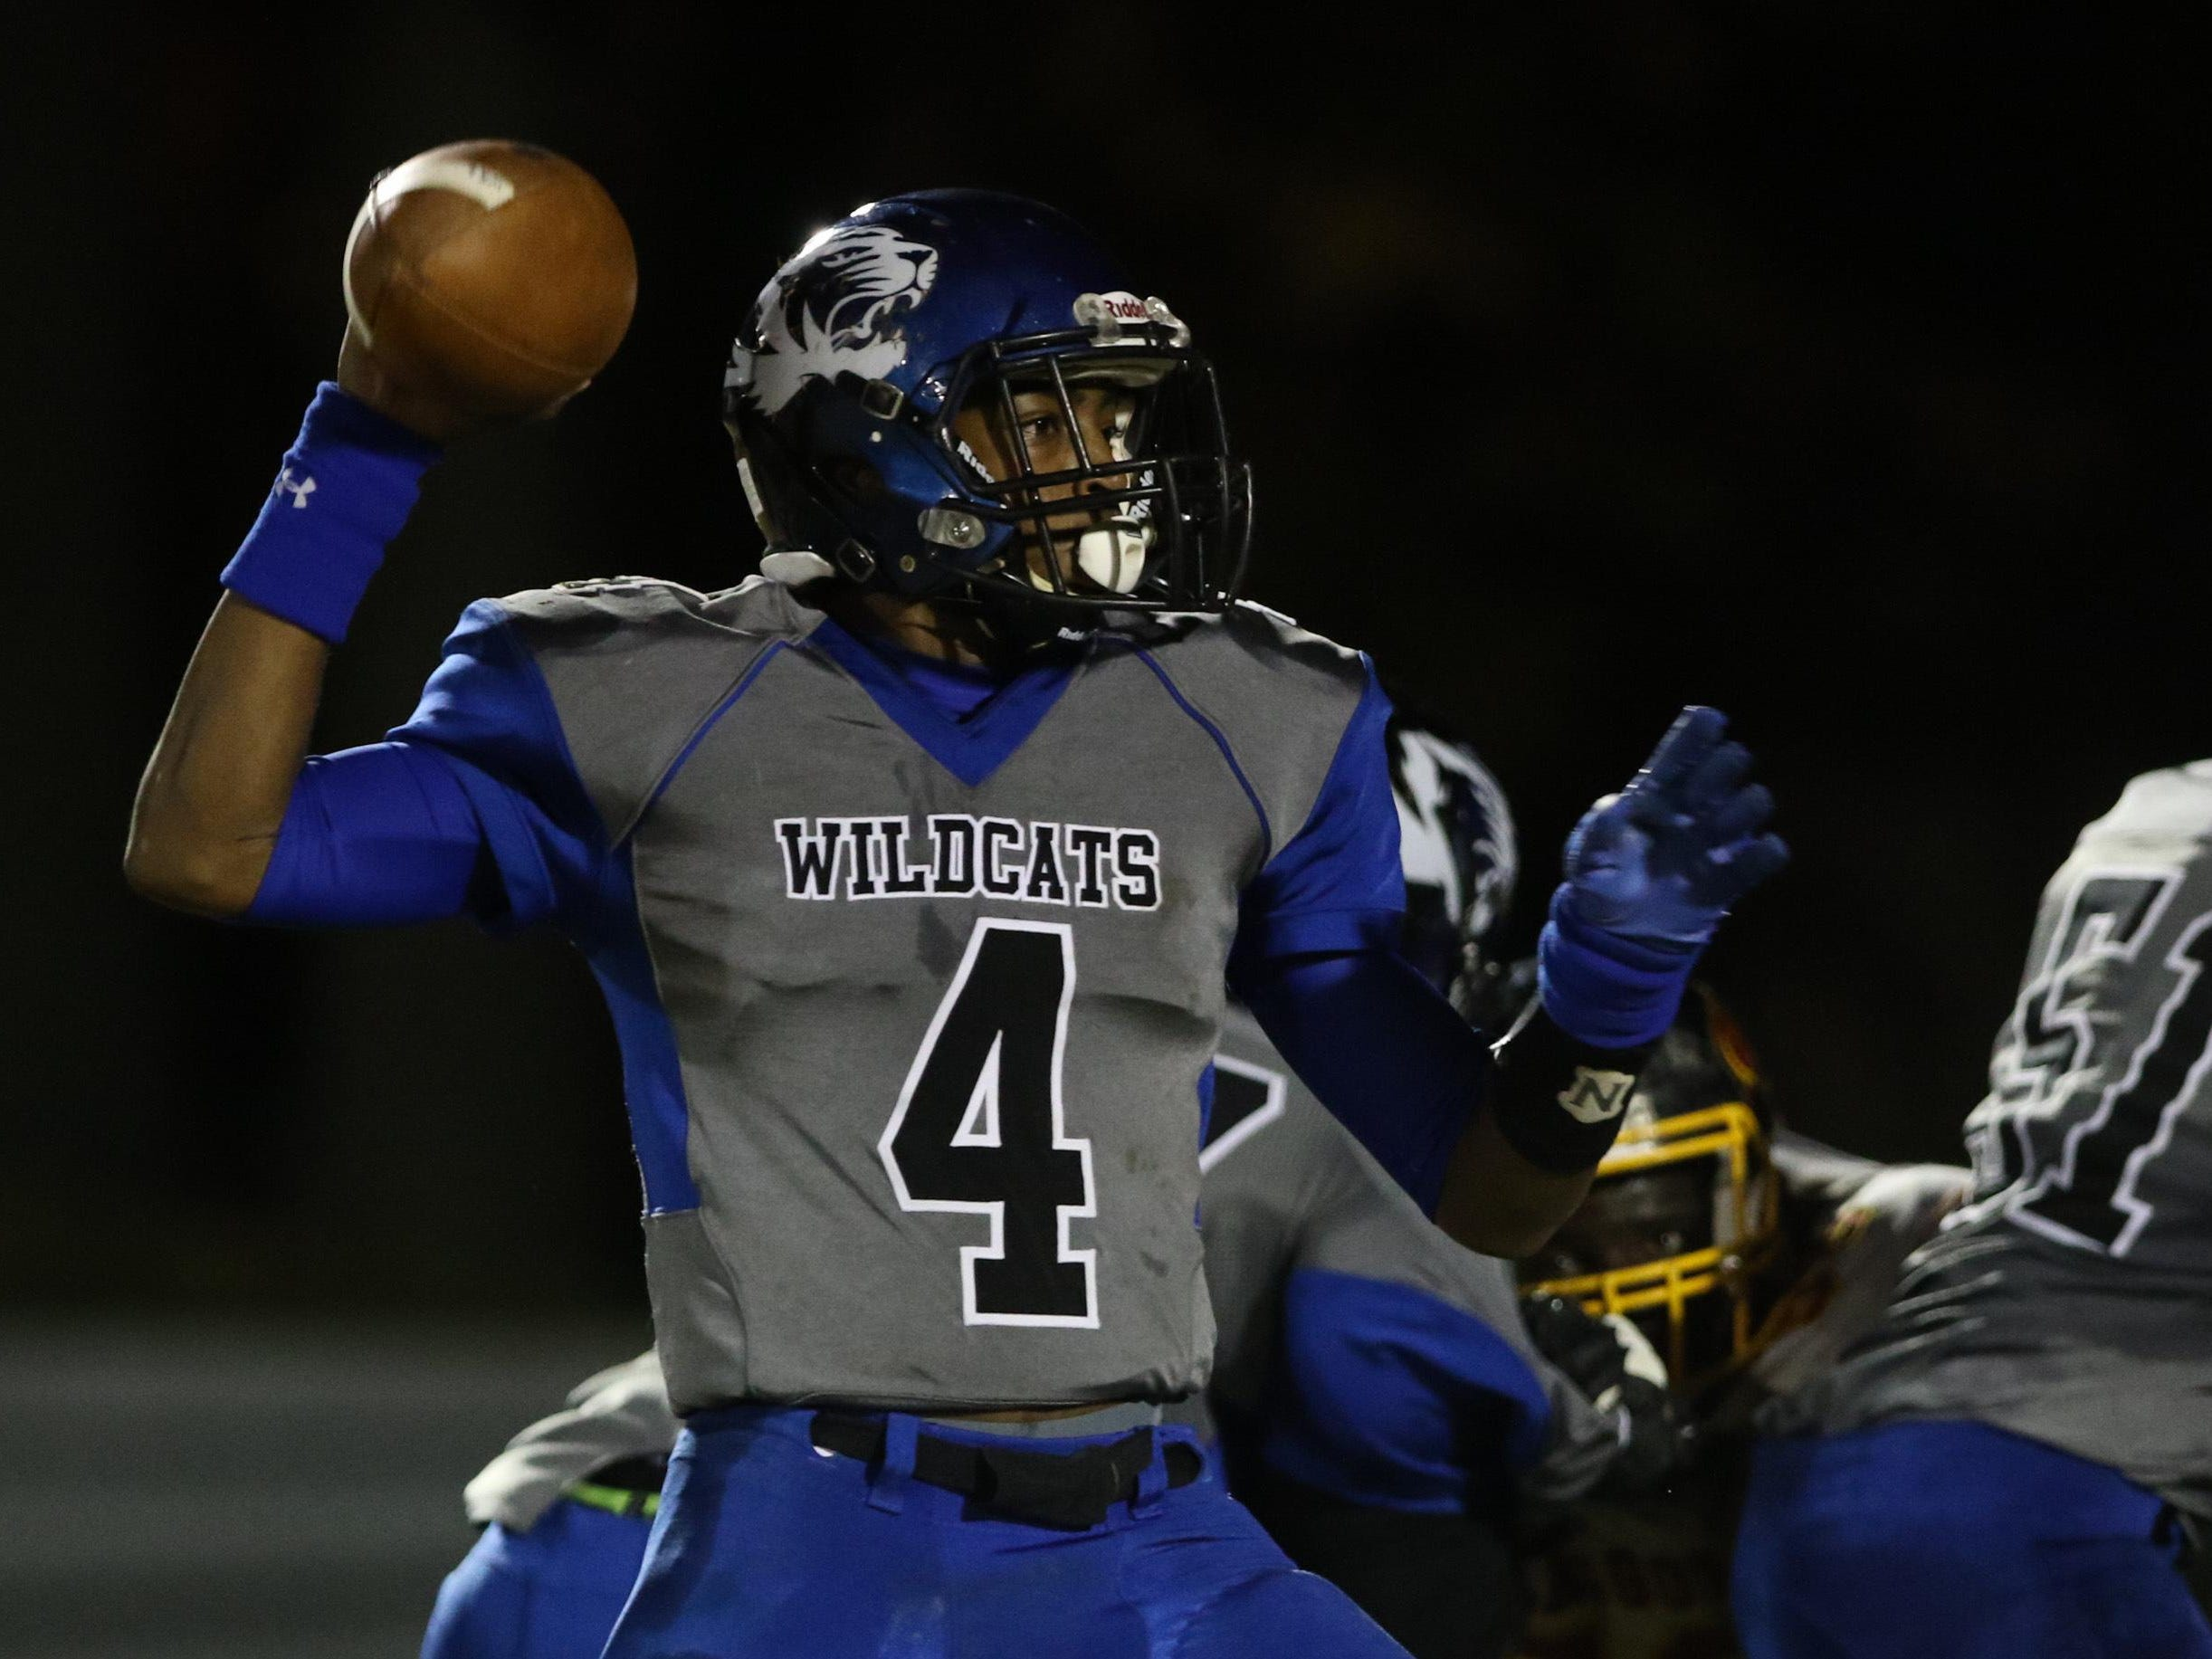 Howard quarterback Earnest Austin ran for three touchdowns as the Wildcats defeated Tower Hill 30-16 on Friday night.